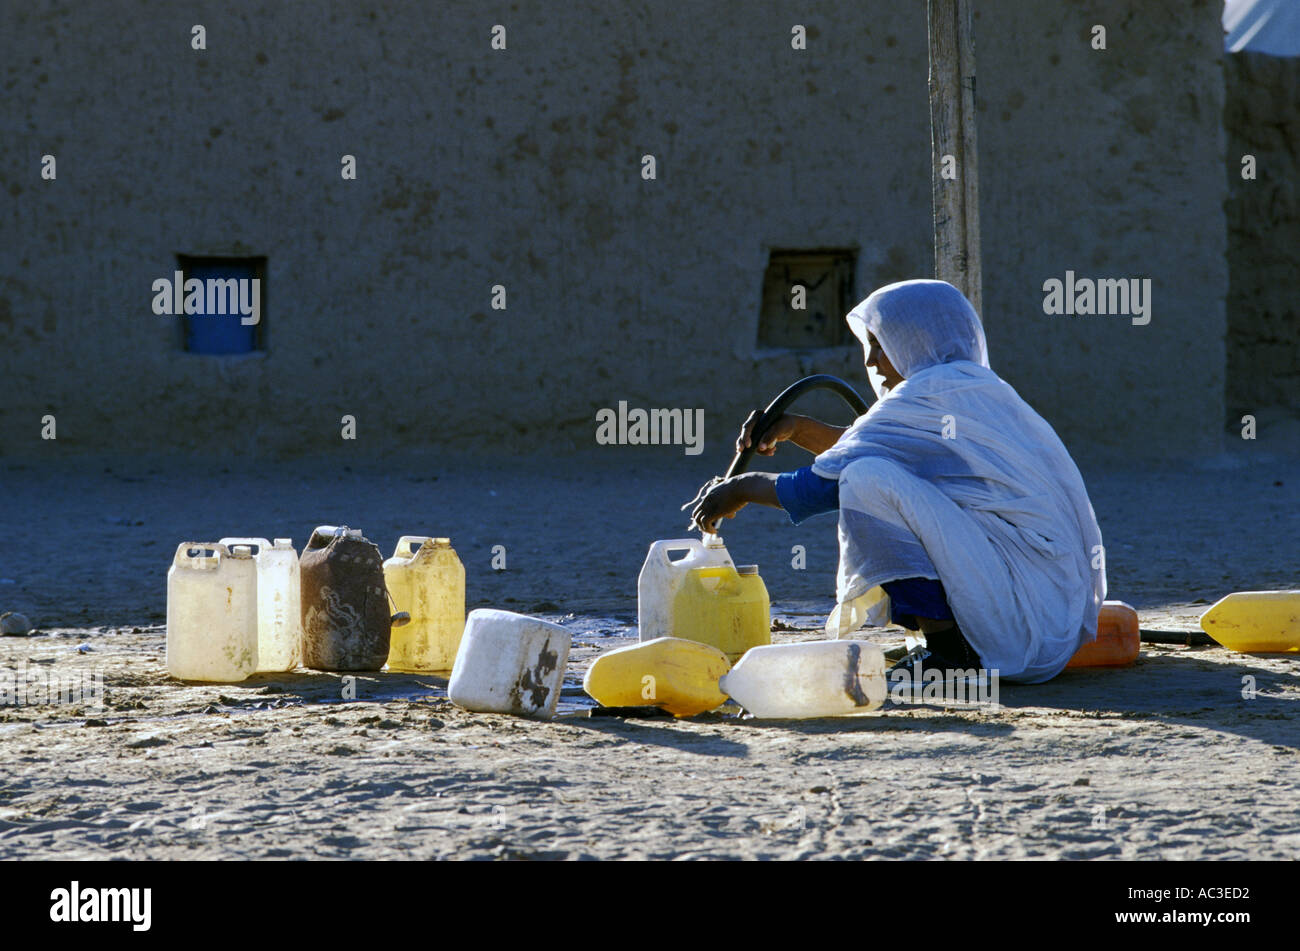 WESTERN SAHARA WOMAN FETCHING WATER AT POLISARIO SMARA CAMP Photo Julio Etchart - Stock Image